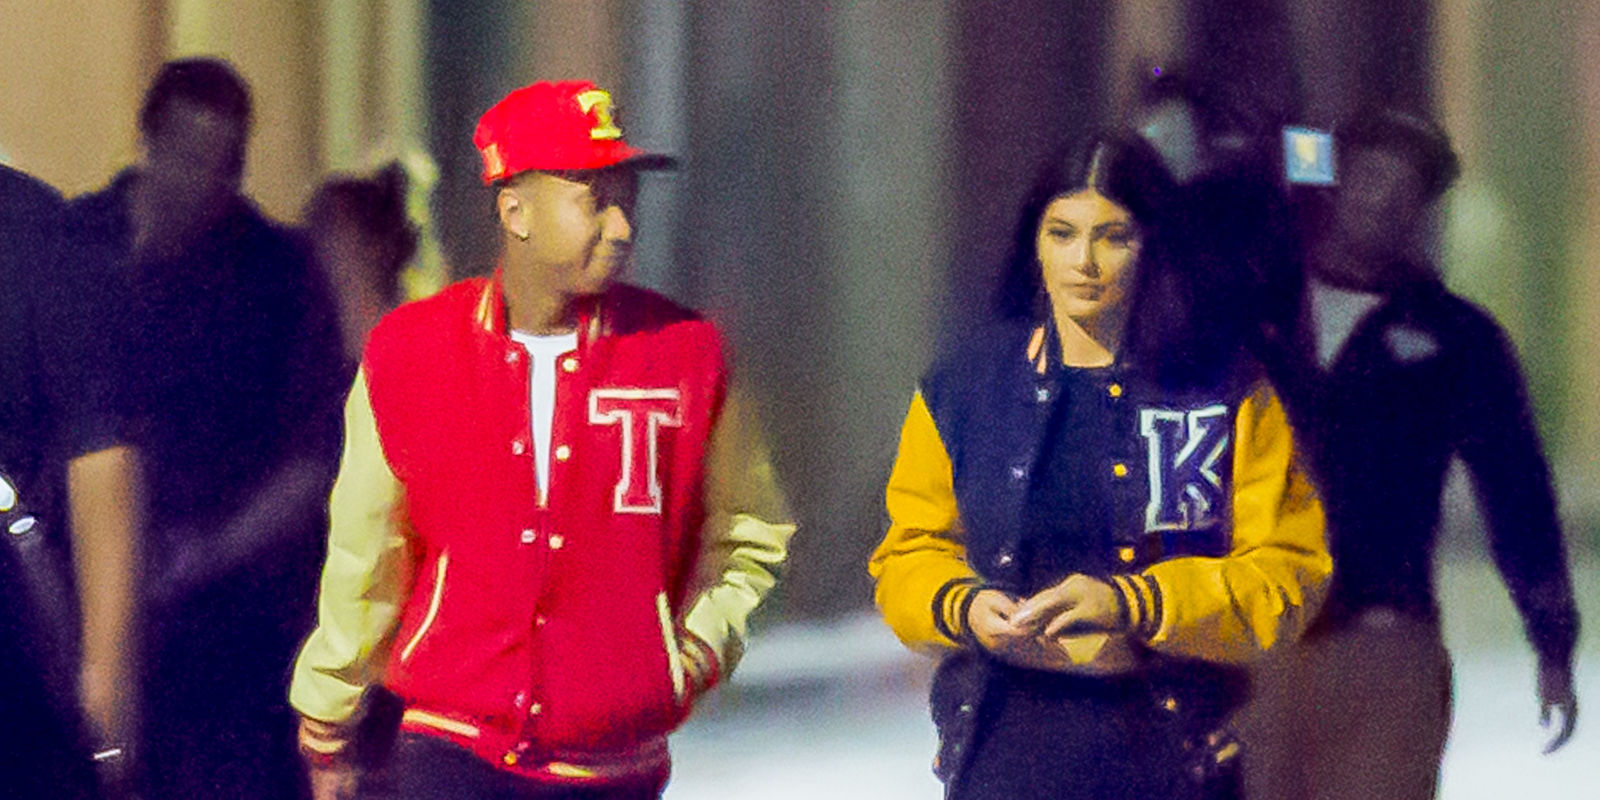 Kylie Jenner And Tyga Jenner Film Music Video In La